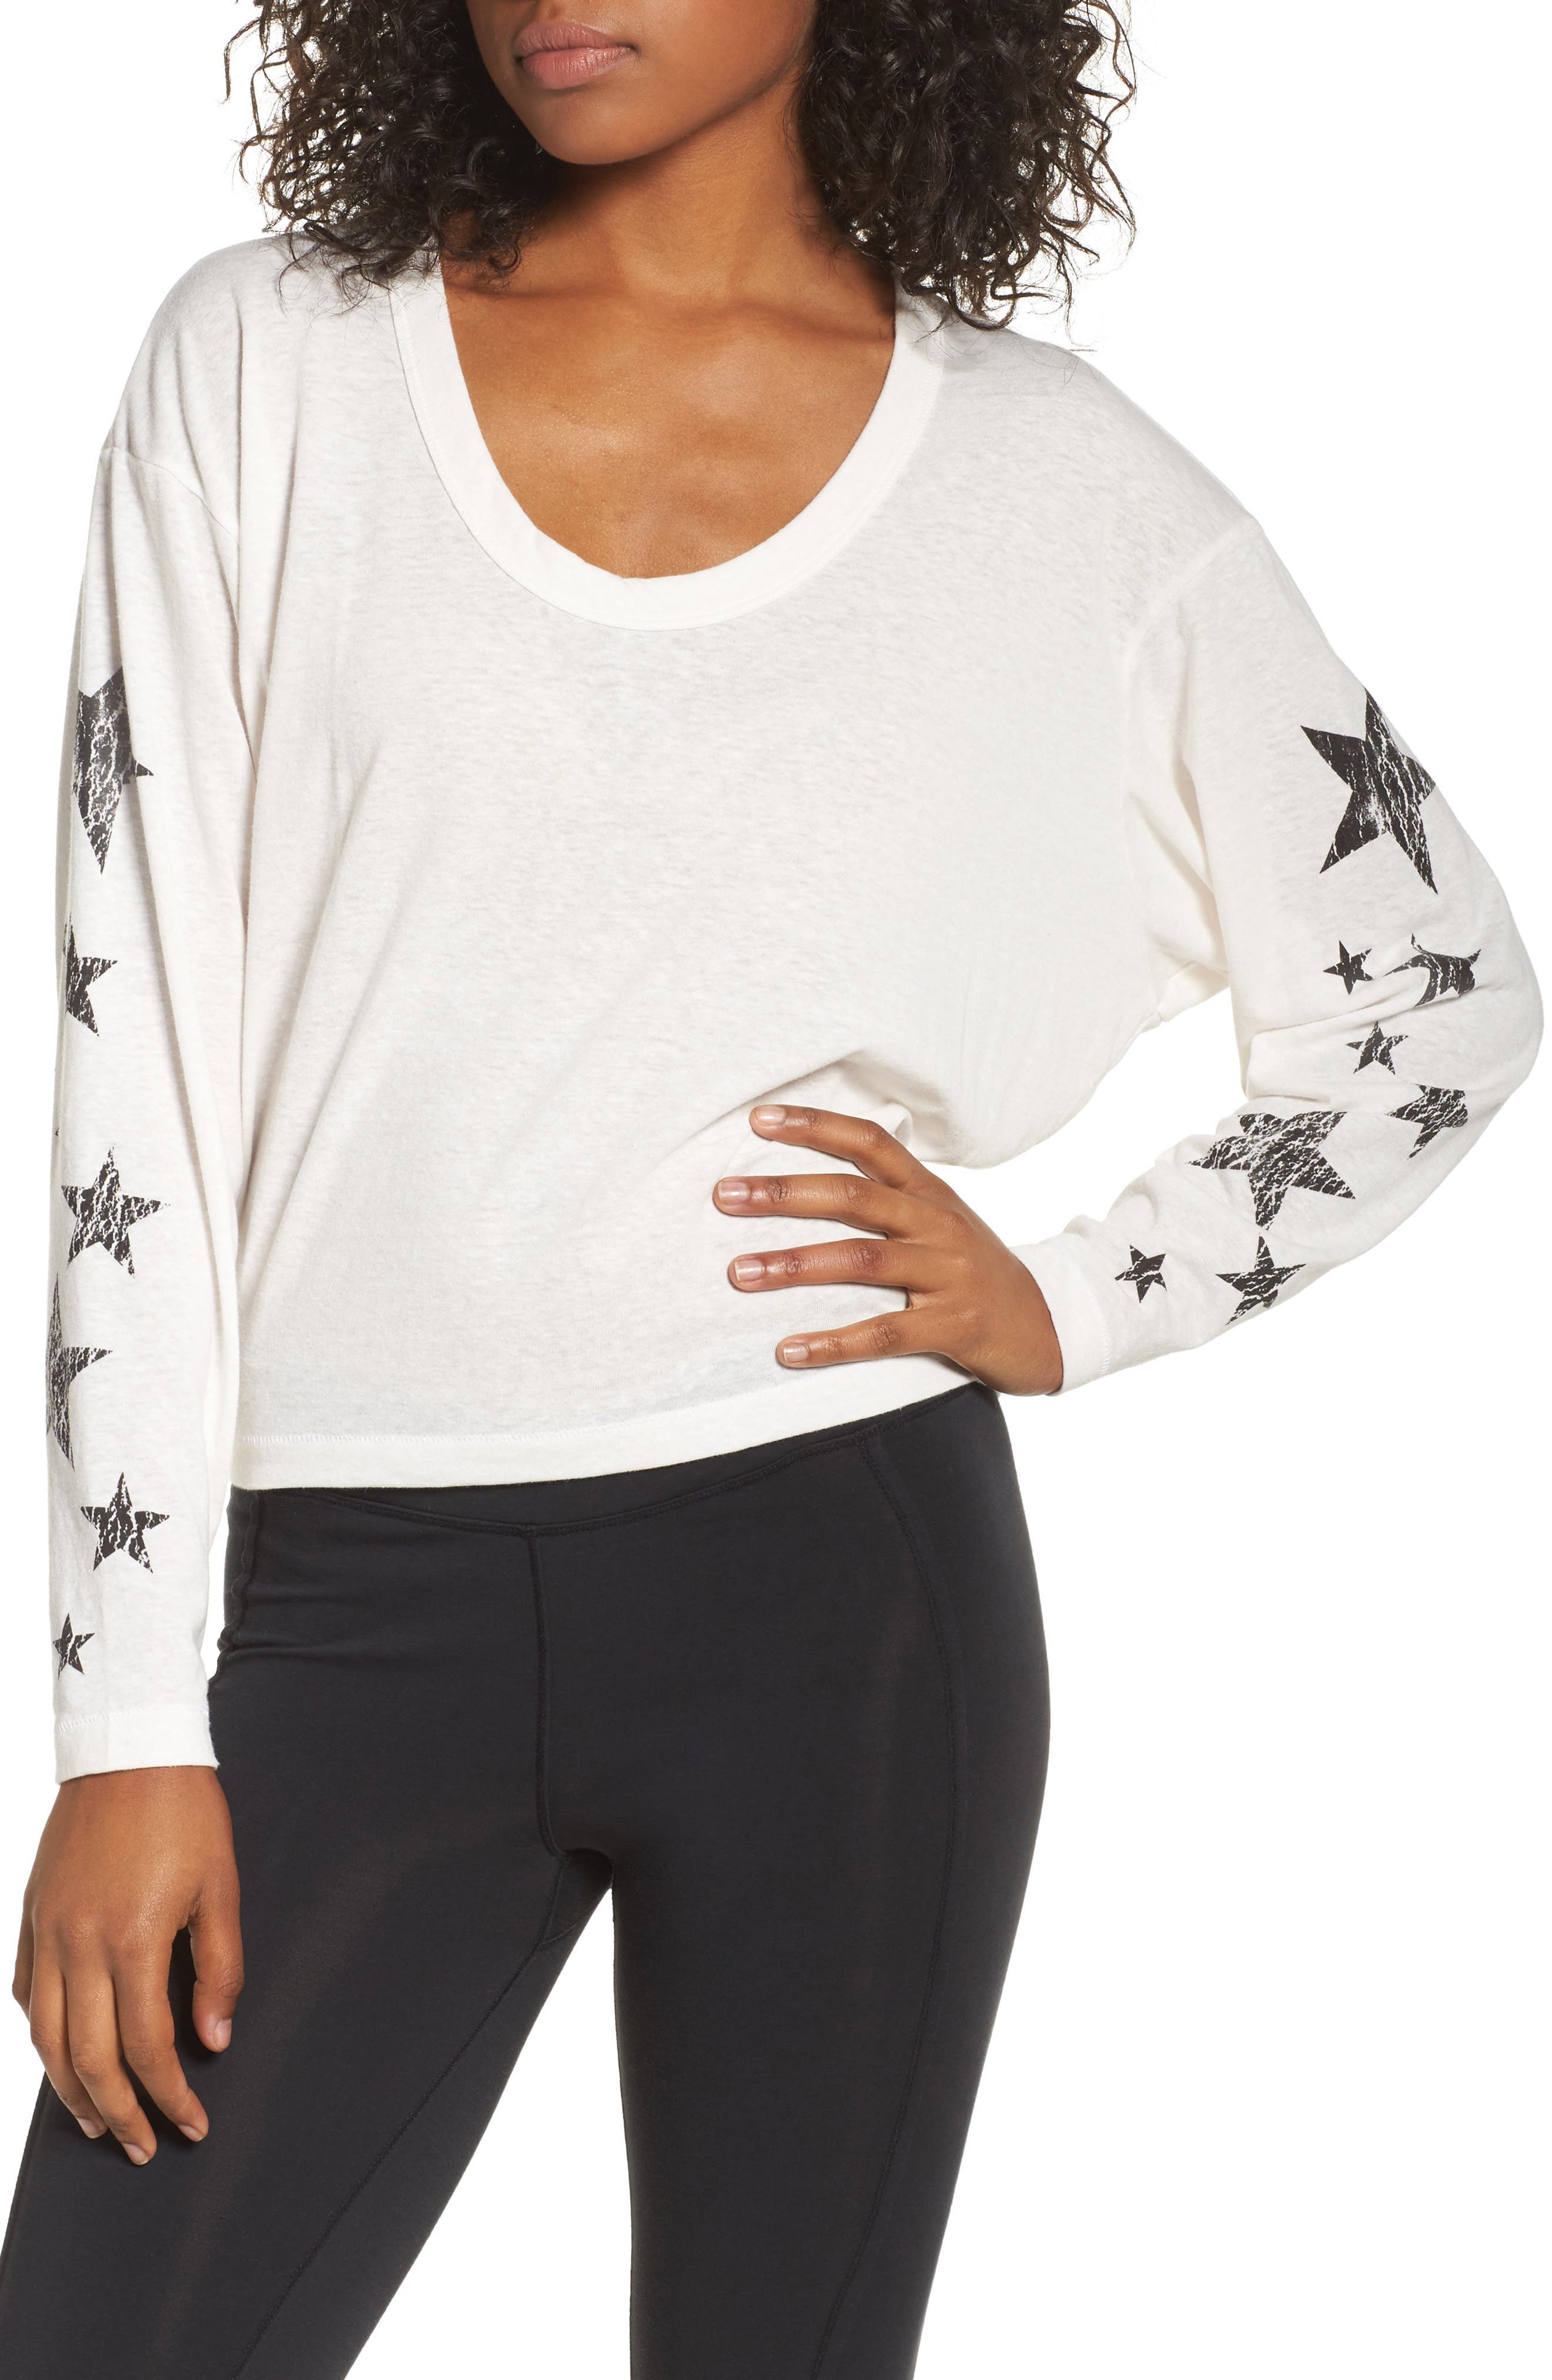 Free People Melrose Star Graphic Top,                             Main thumbnail 3, color,